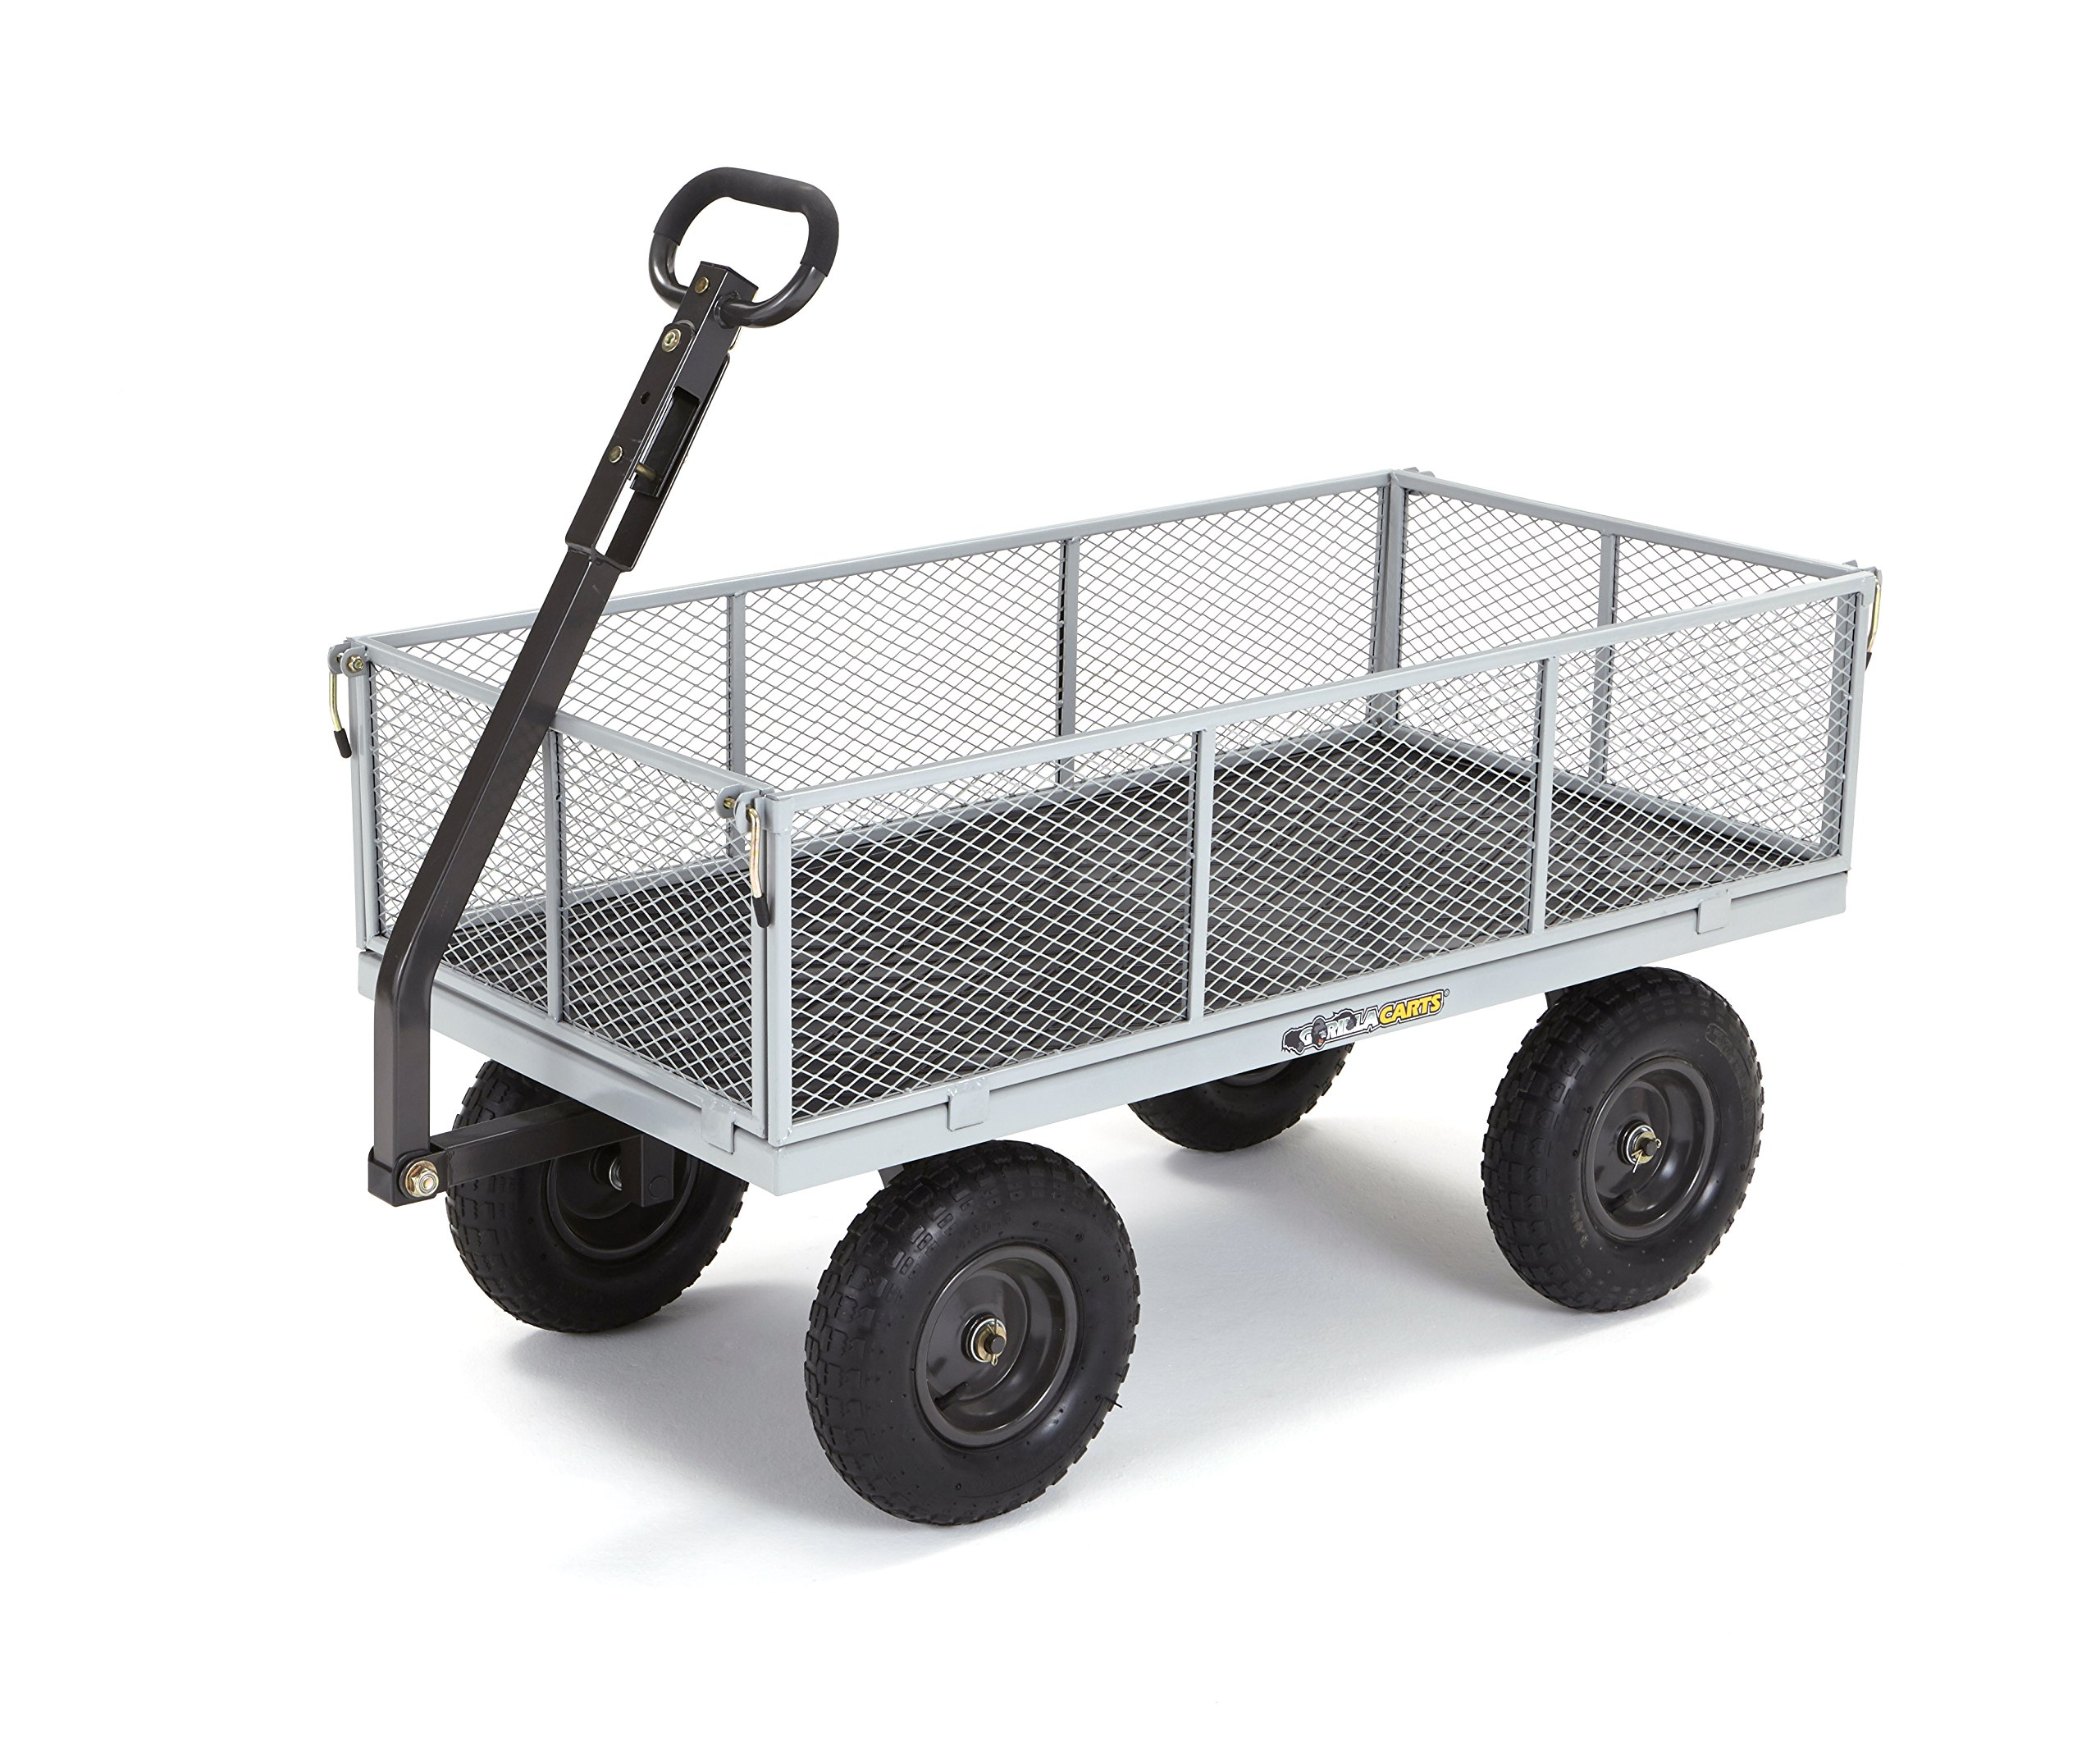 Gorilla Carts GOR1001-COM Heavy-Duty Steel Utility Cart with Removable Sides, 1000-lbs. Capacity, Gray by Gorilla Carts